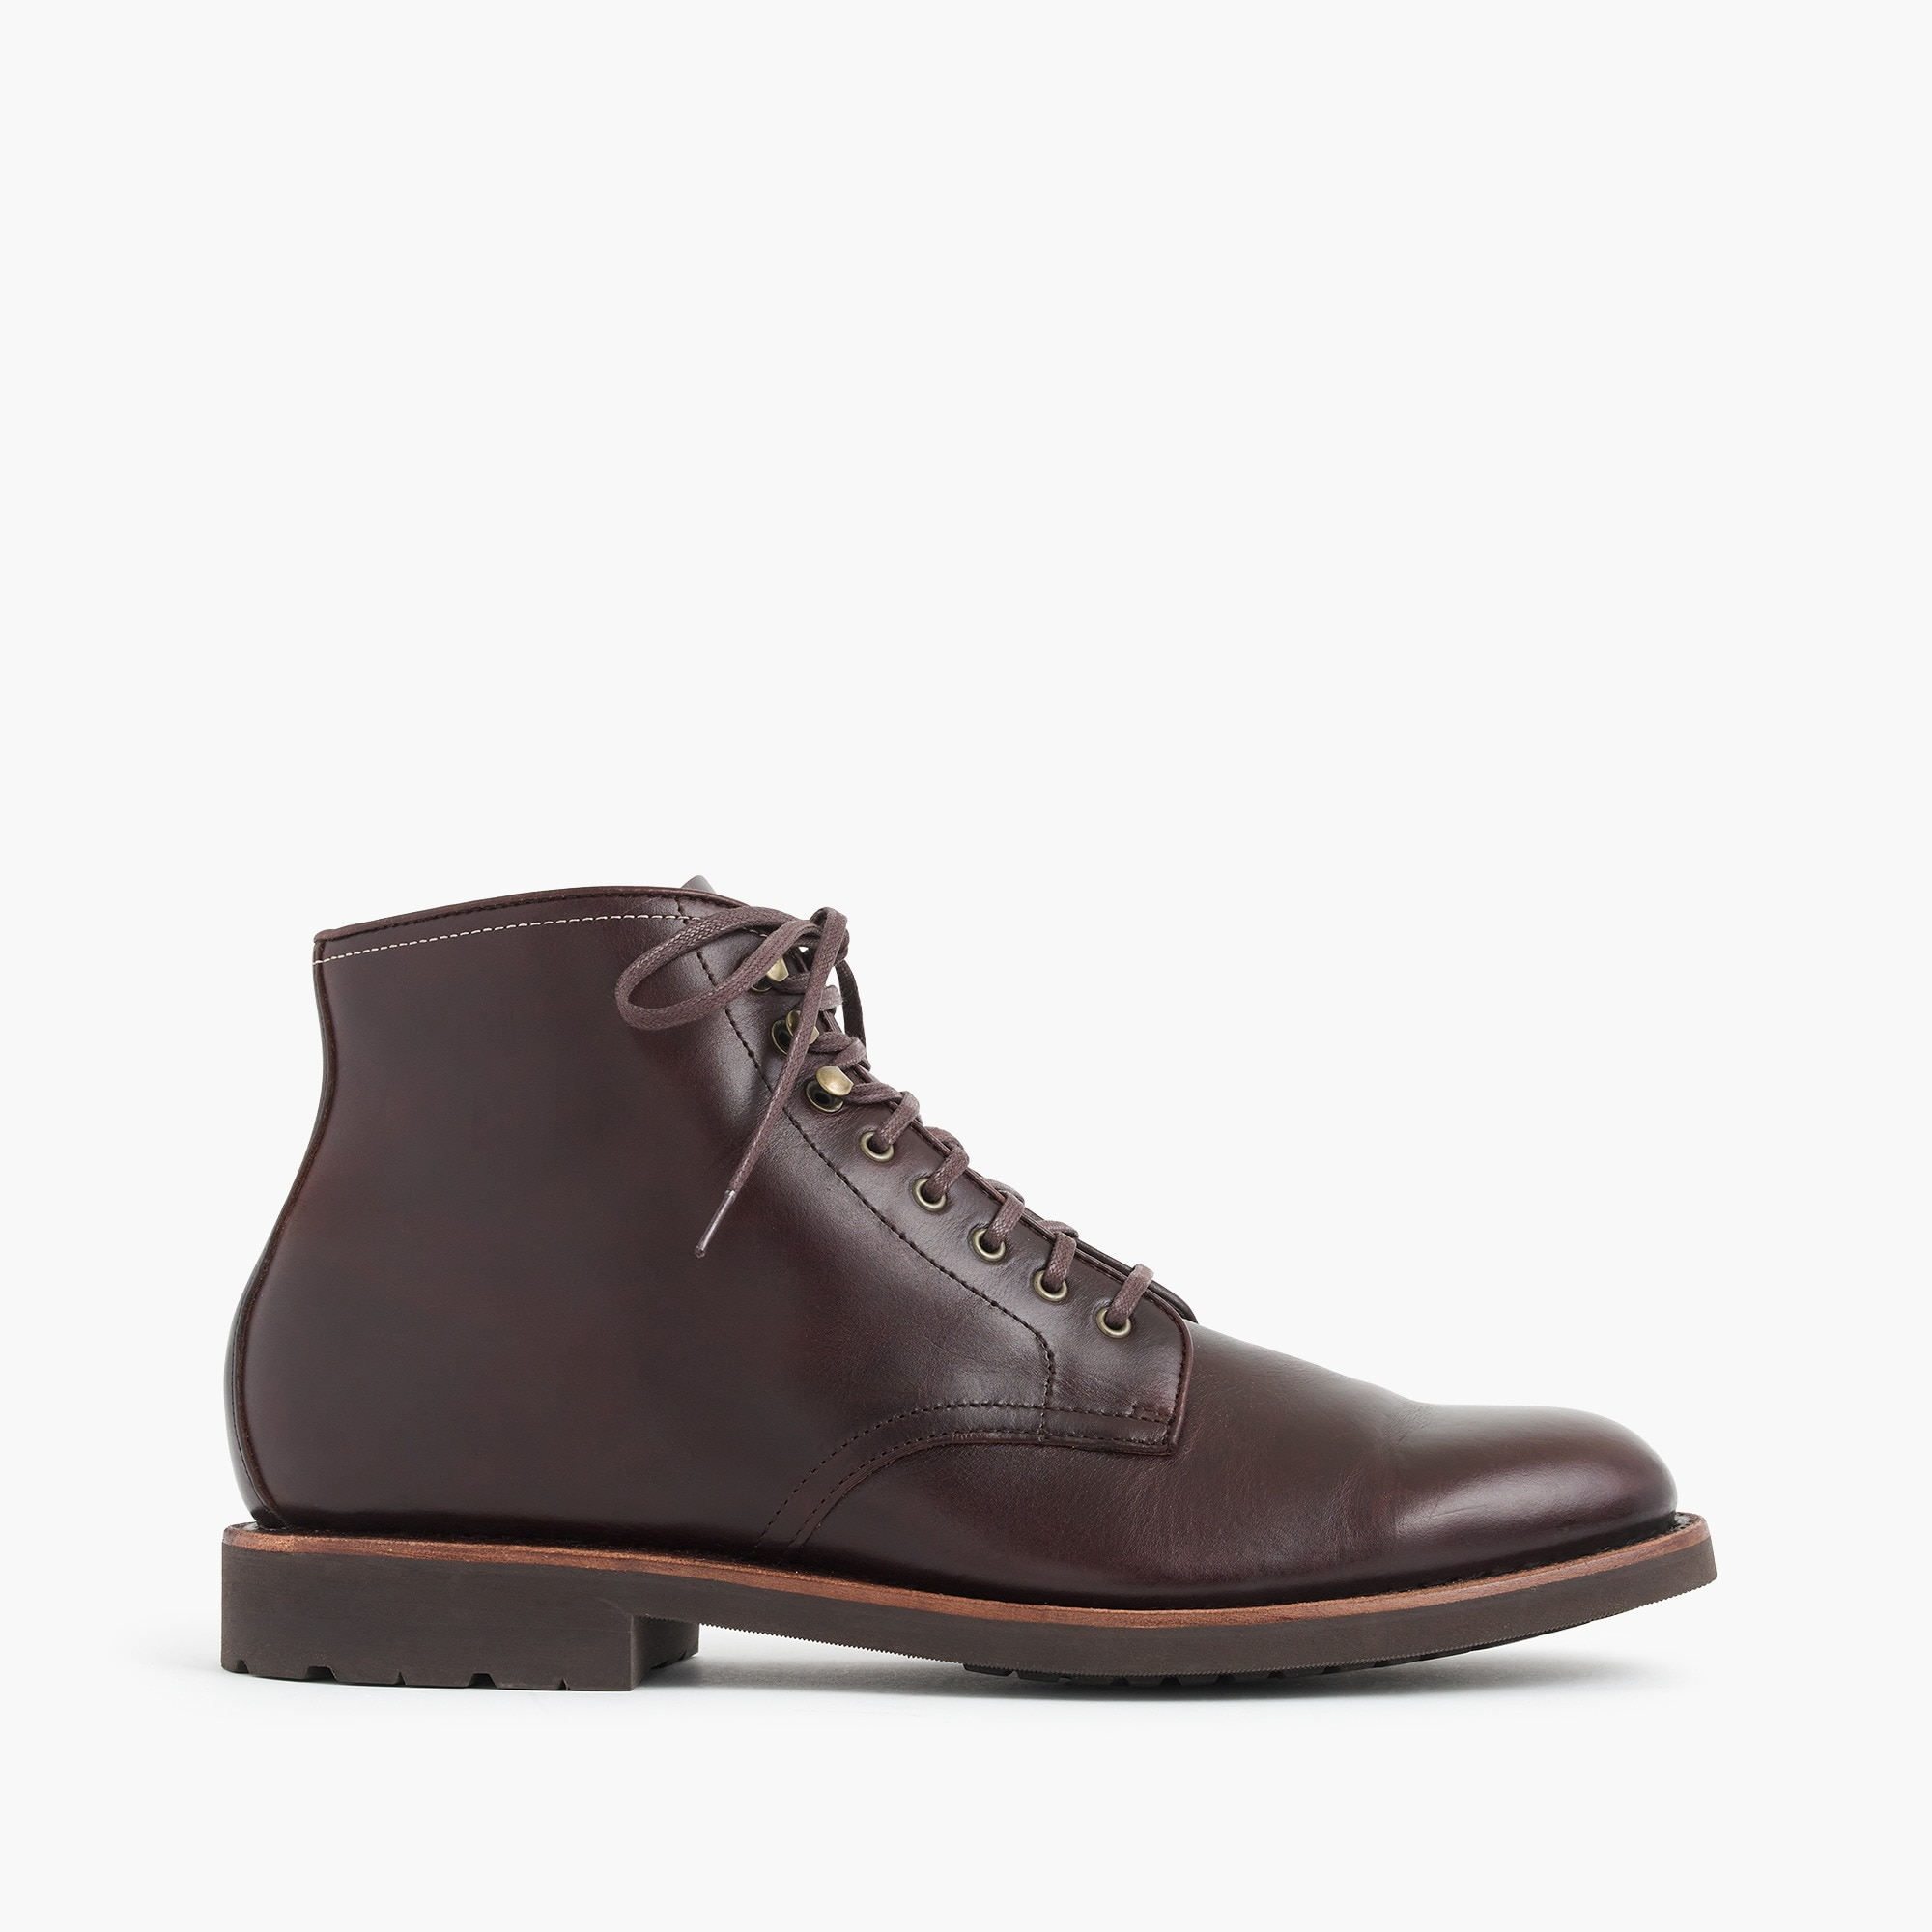 Image 1 for Kenton plain-toe boots